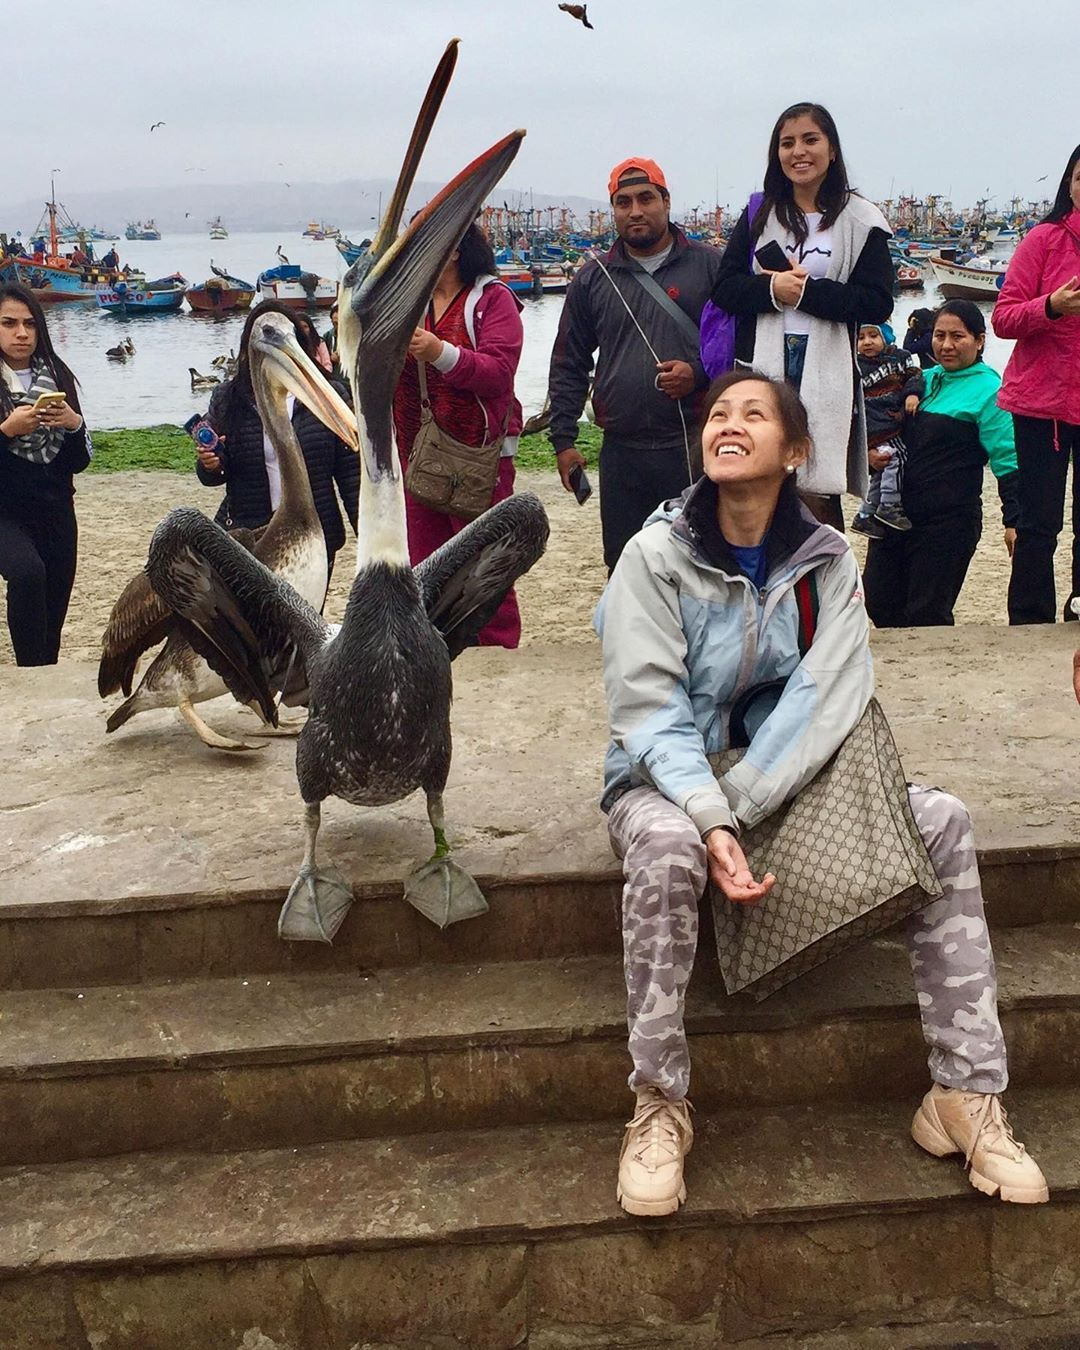 Grateful for the gift of travel.  Made some new friends including this Pelican!  This trip is not only an adventure but mostly a journey!  Made me see the so many faces of life! â â â â â #travel #adventure #journey #life #friends #animals #pelicans #journeyofalifetime #giftoftravel #neverstopexploring #northface #facesoflife #people #places #faces #travelperu #ica #peru #mytravel #myjourney #travellife